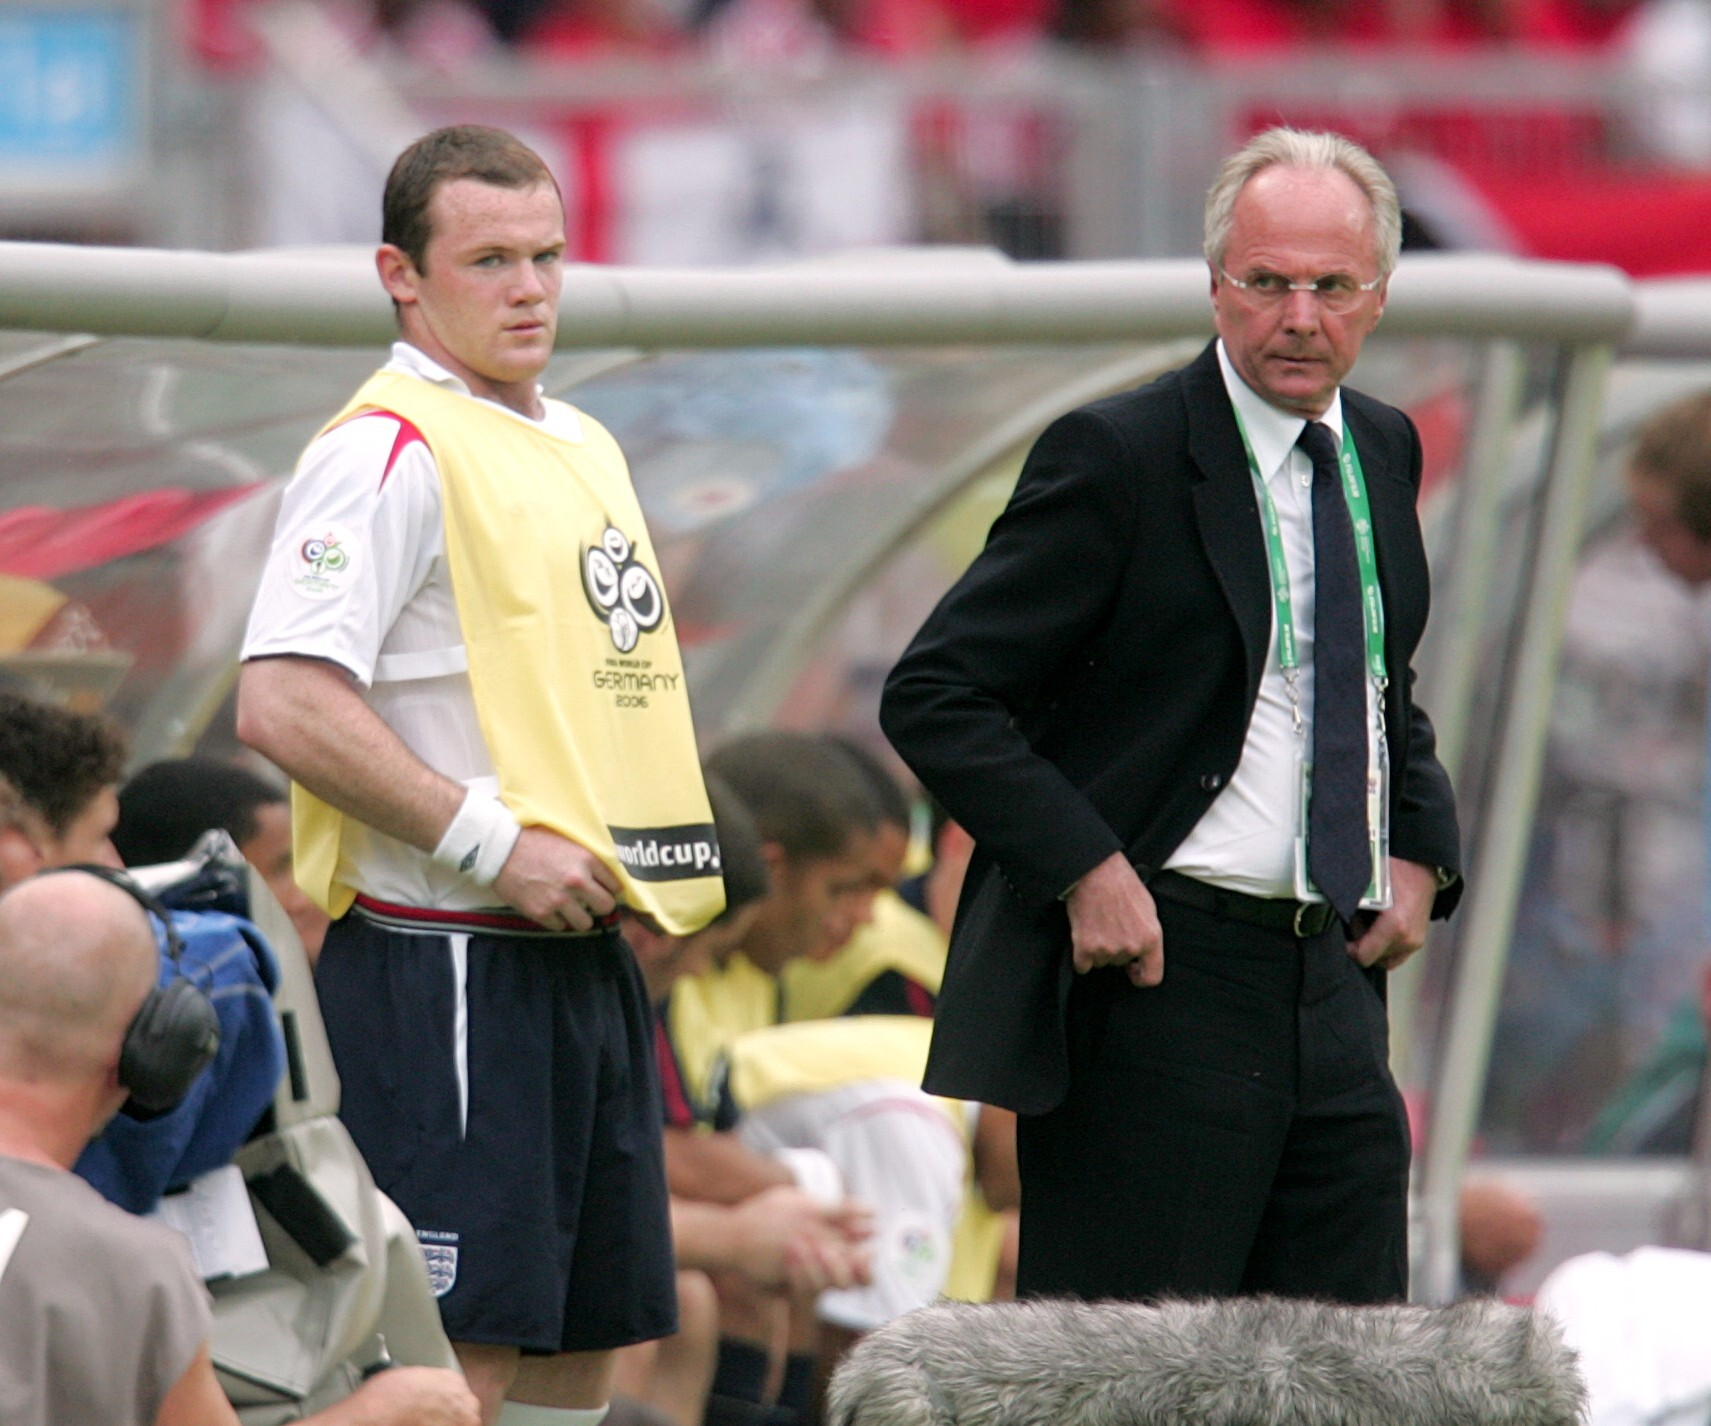 Wayne Rooney came on for Michael Owen